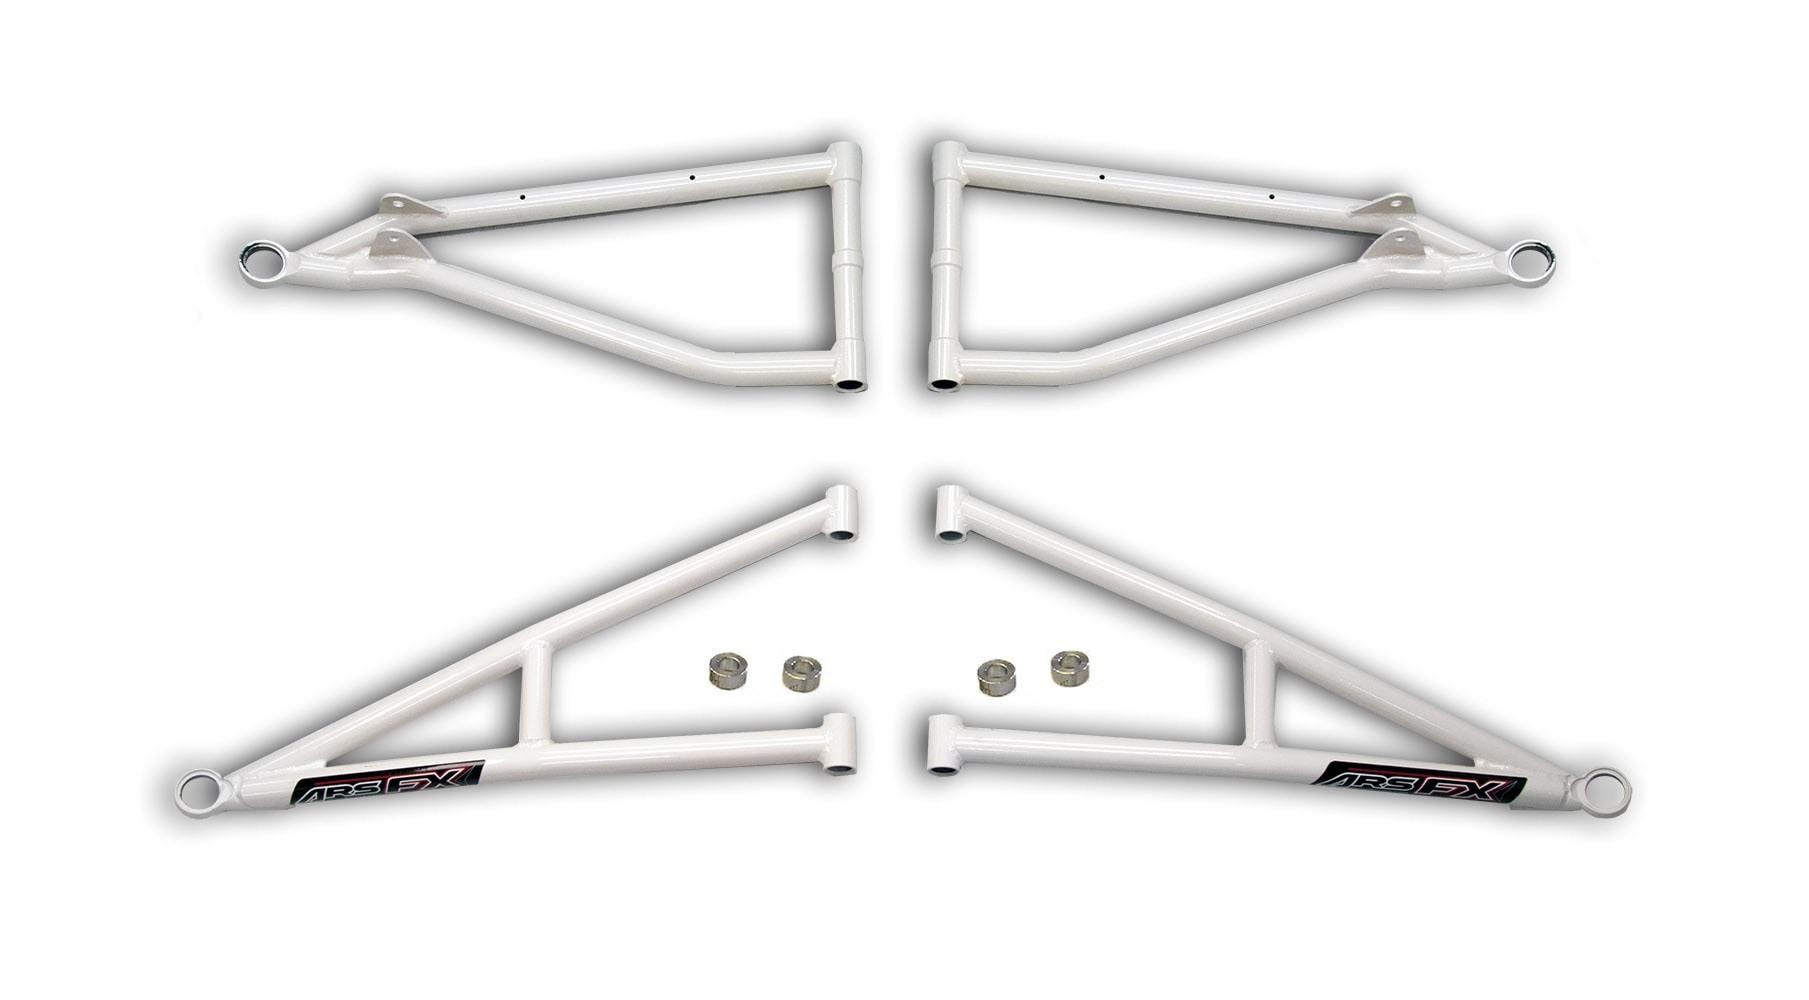 Zbroz Ars Fx 2 Forward A Arm Kit For Polaris Rzr Xp 900